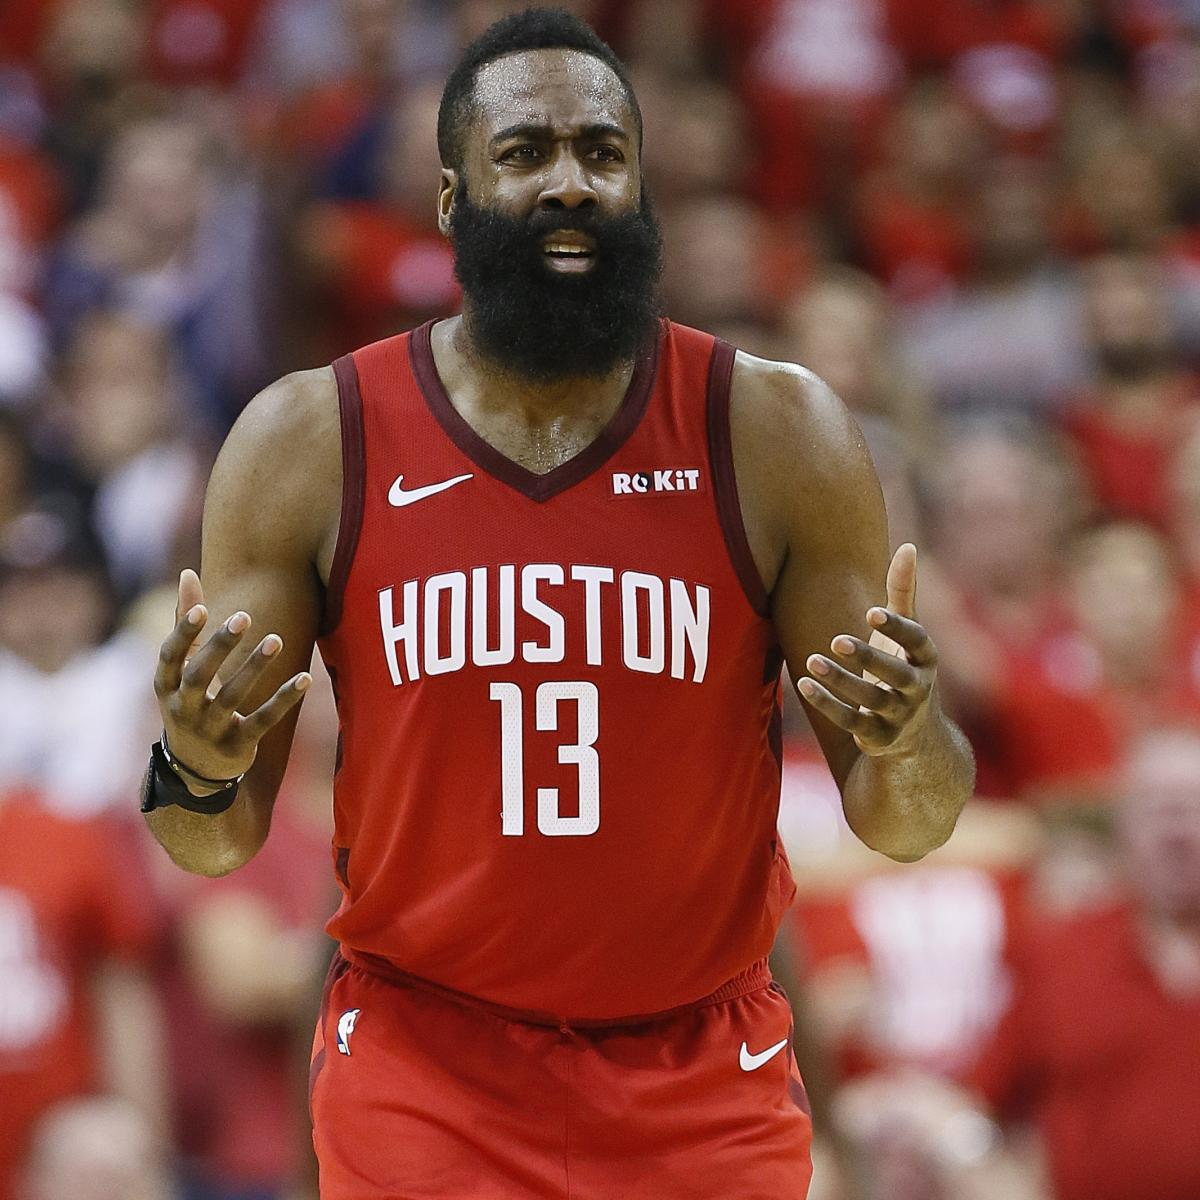 James Harden Injury Report: Rockets Owner Tilman Fertitta After Losing To Warriors